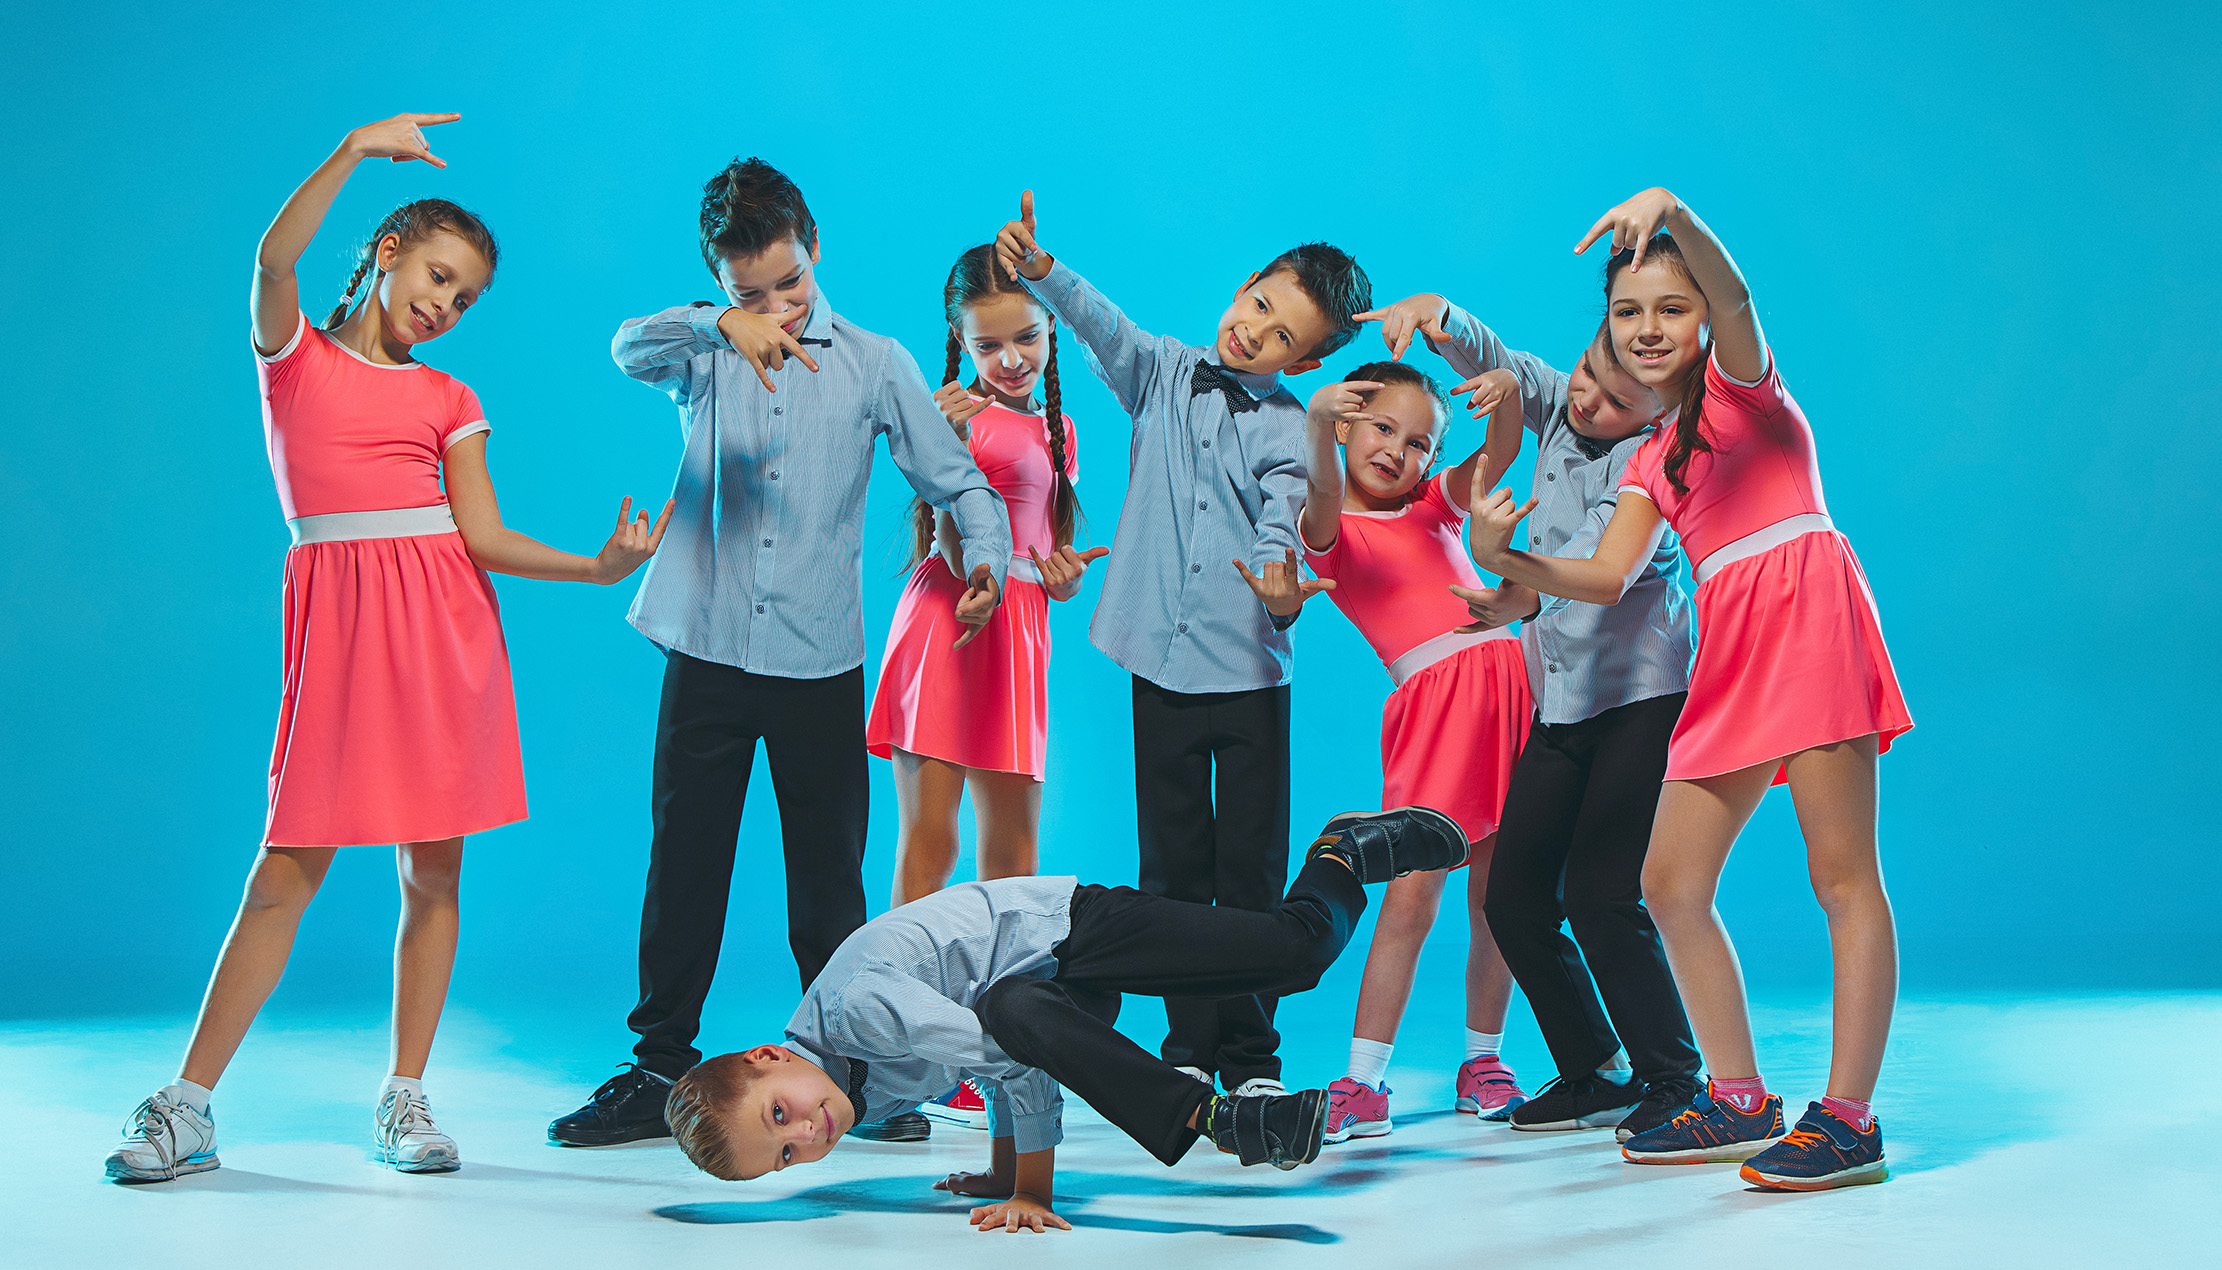 Cute funny girls and boys dancing on blue studio background